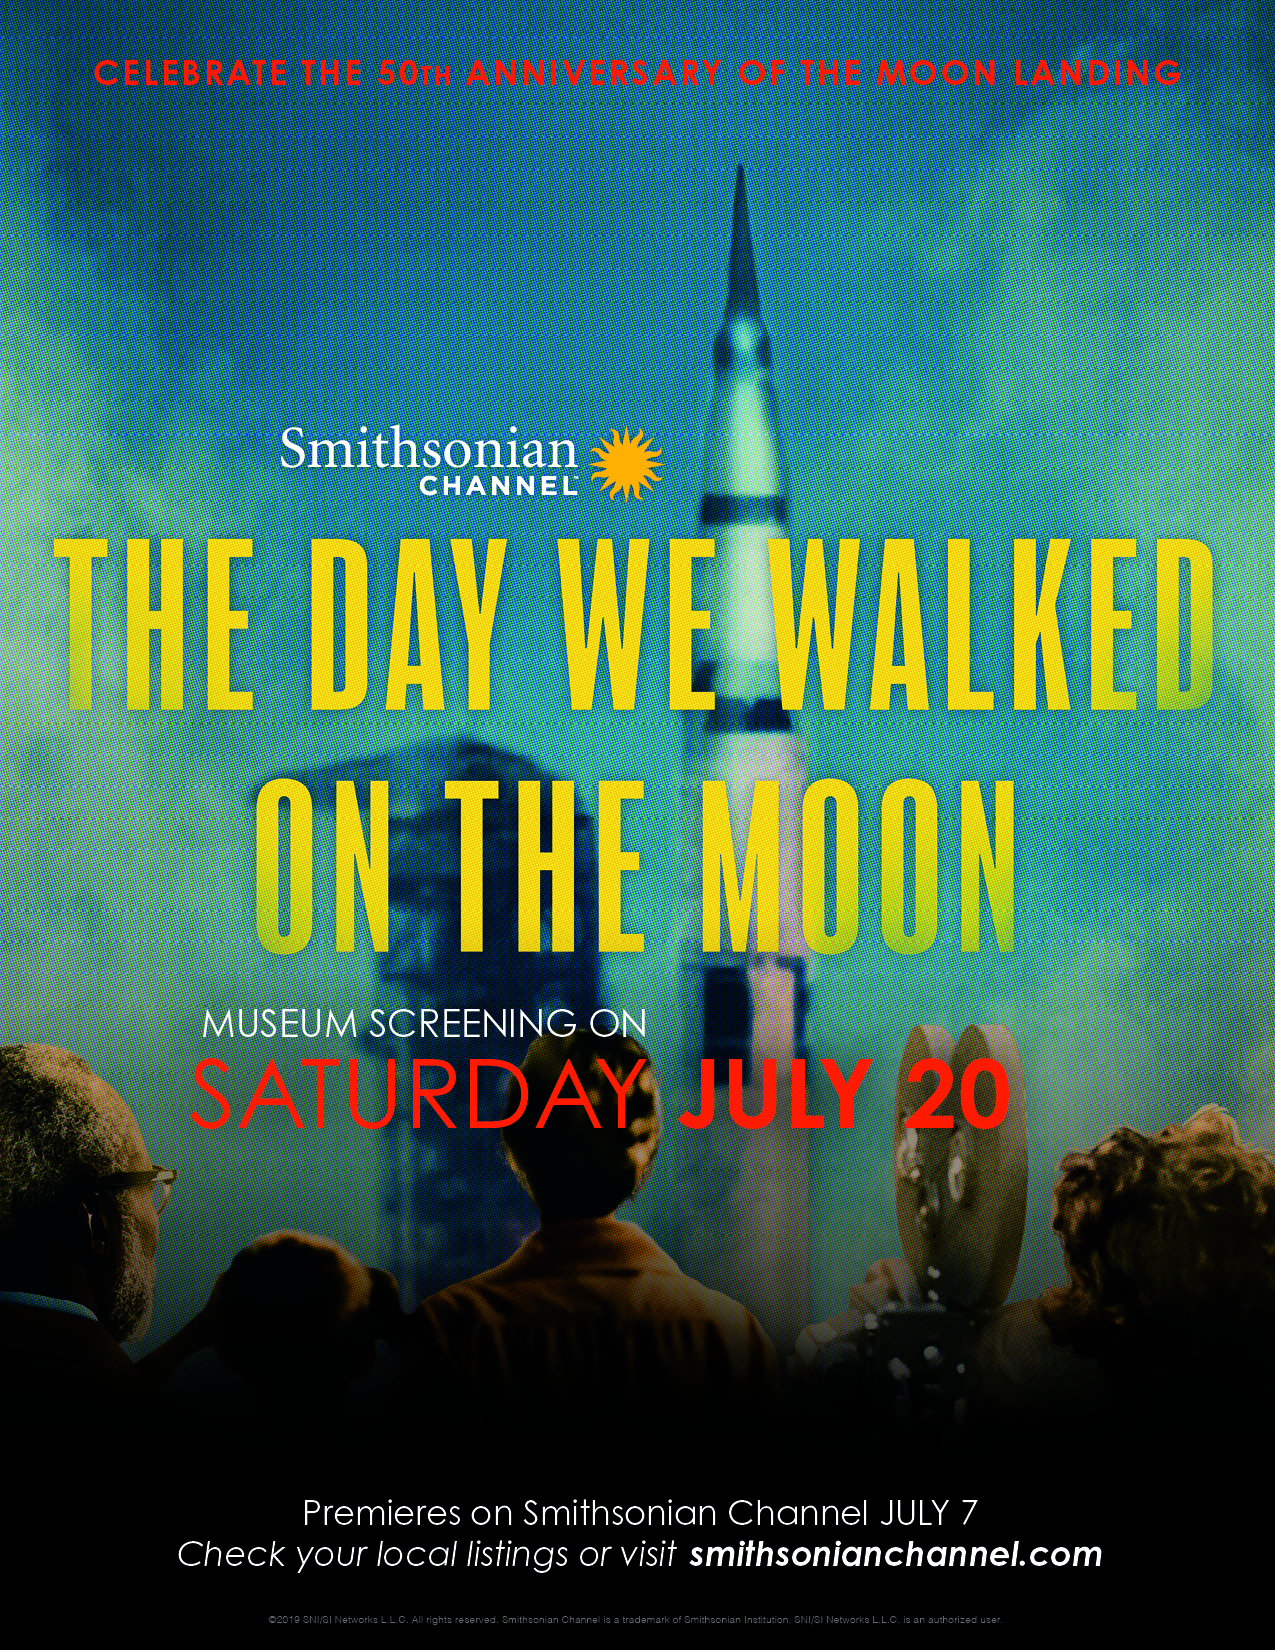 Smithsonian Channel: The Day We Walked on the Moon